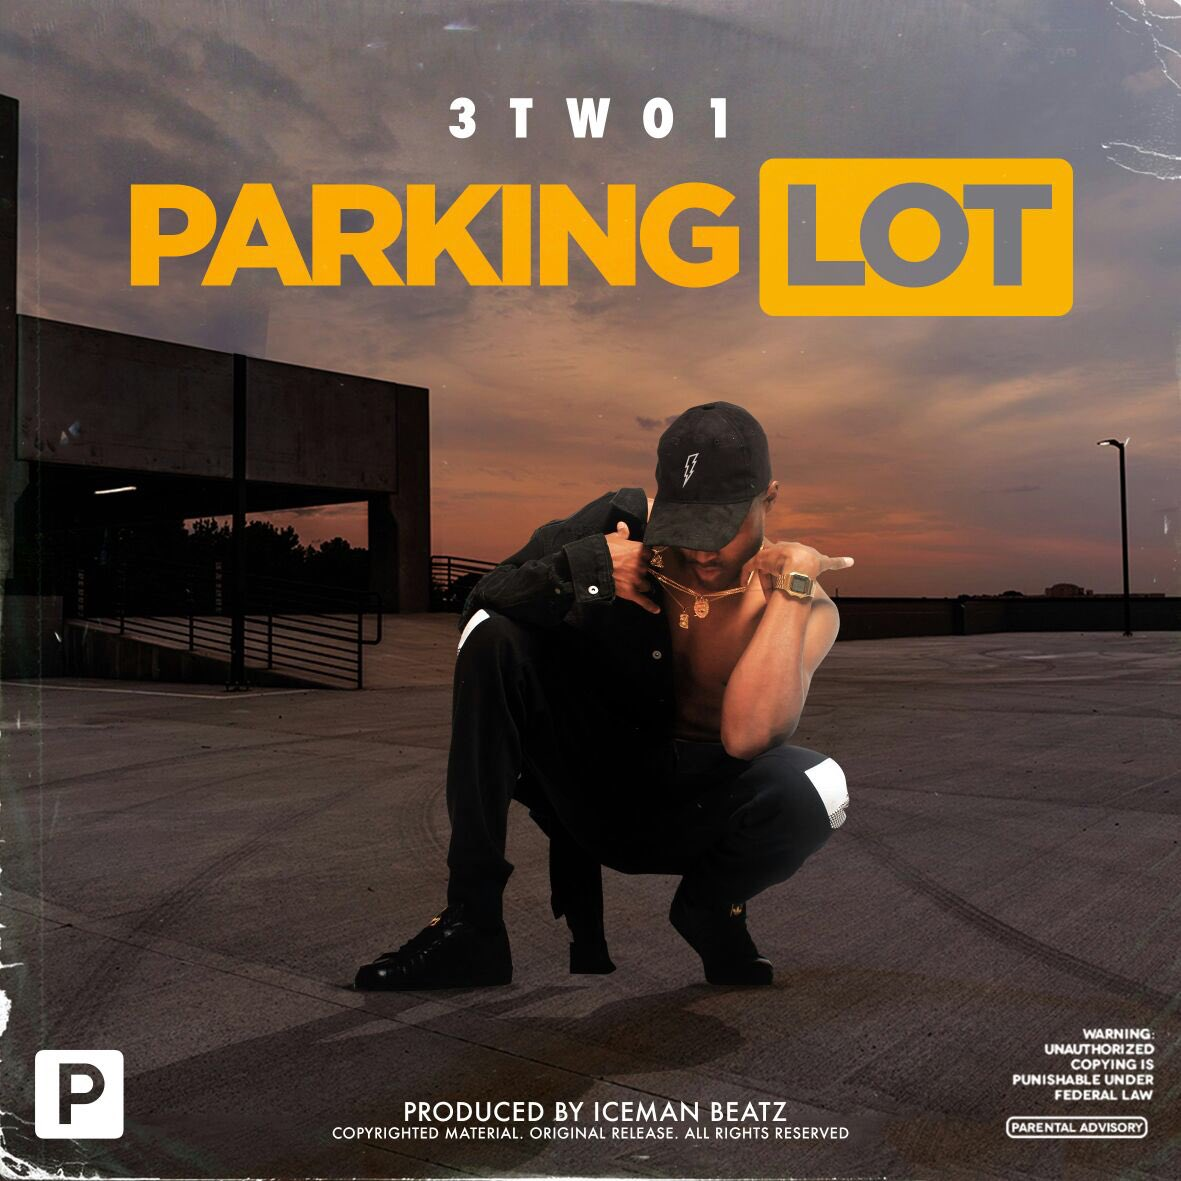 3TWO1 - Parking Lot